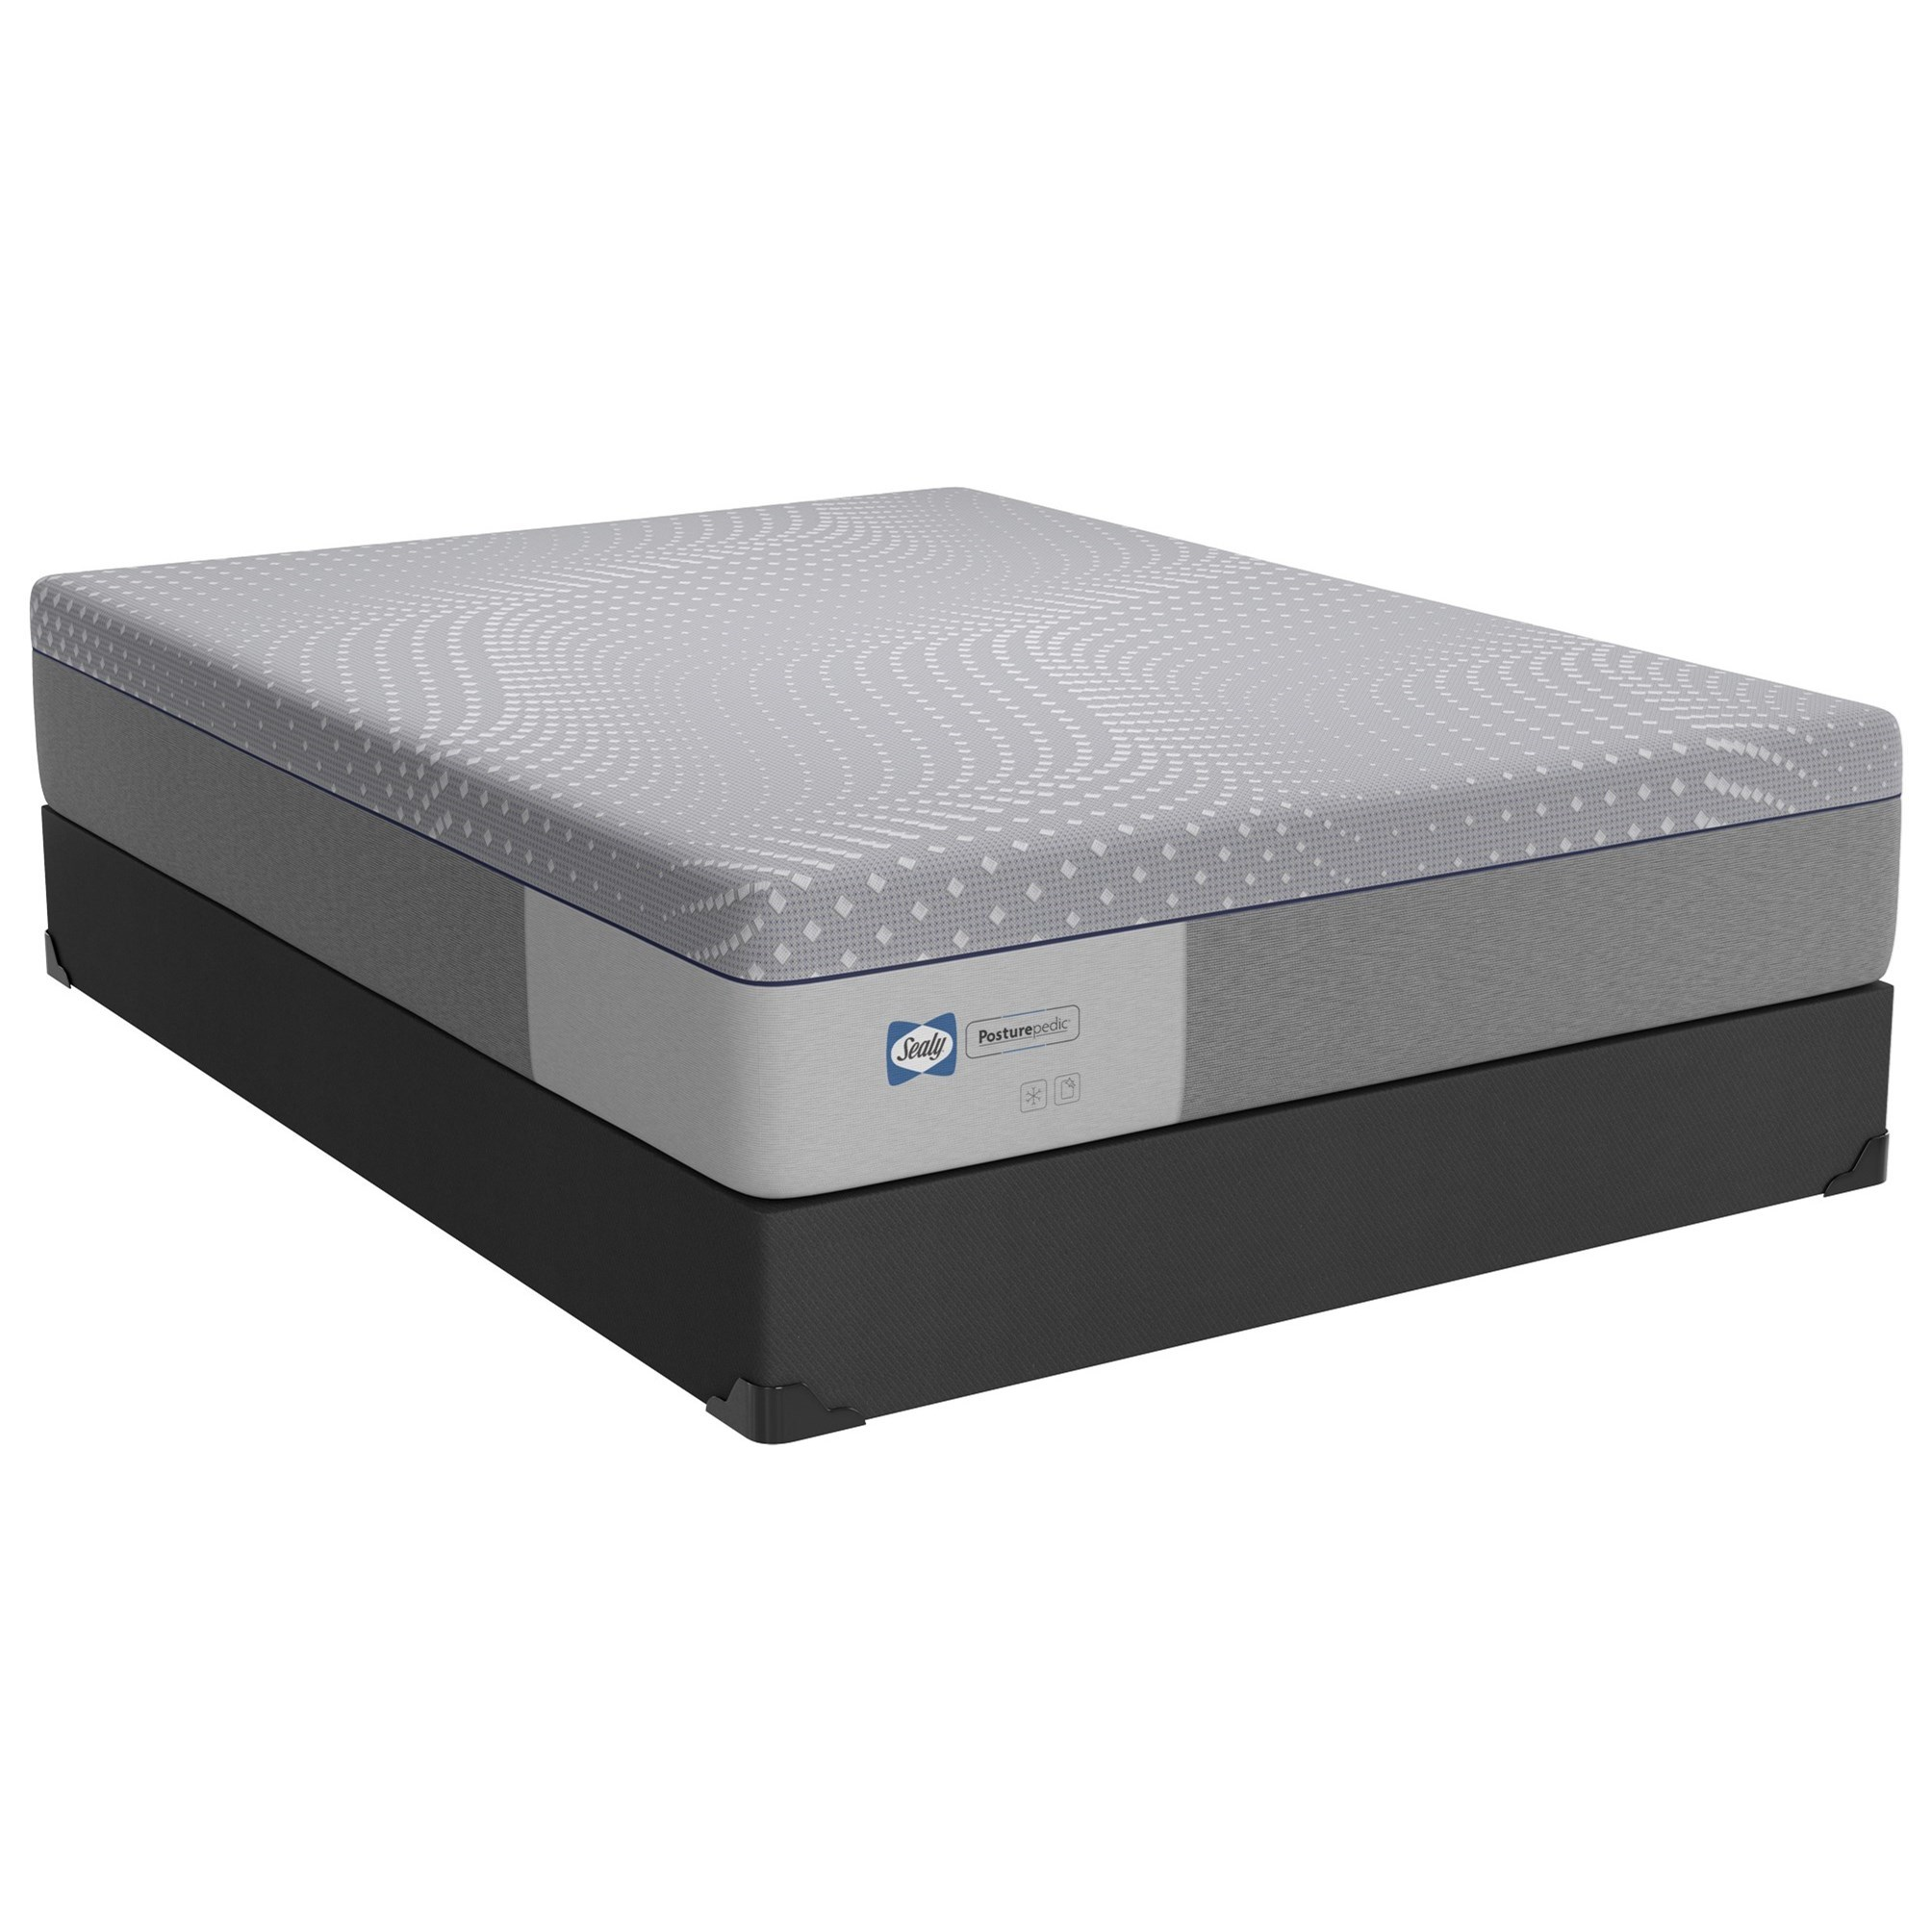 "PPF5 Posturpedic Foam Firm Queen 13"" Firm Gel Memory Foam Matttress Set by Sealy at Novello Home Furnishings"